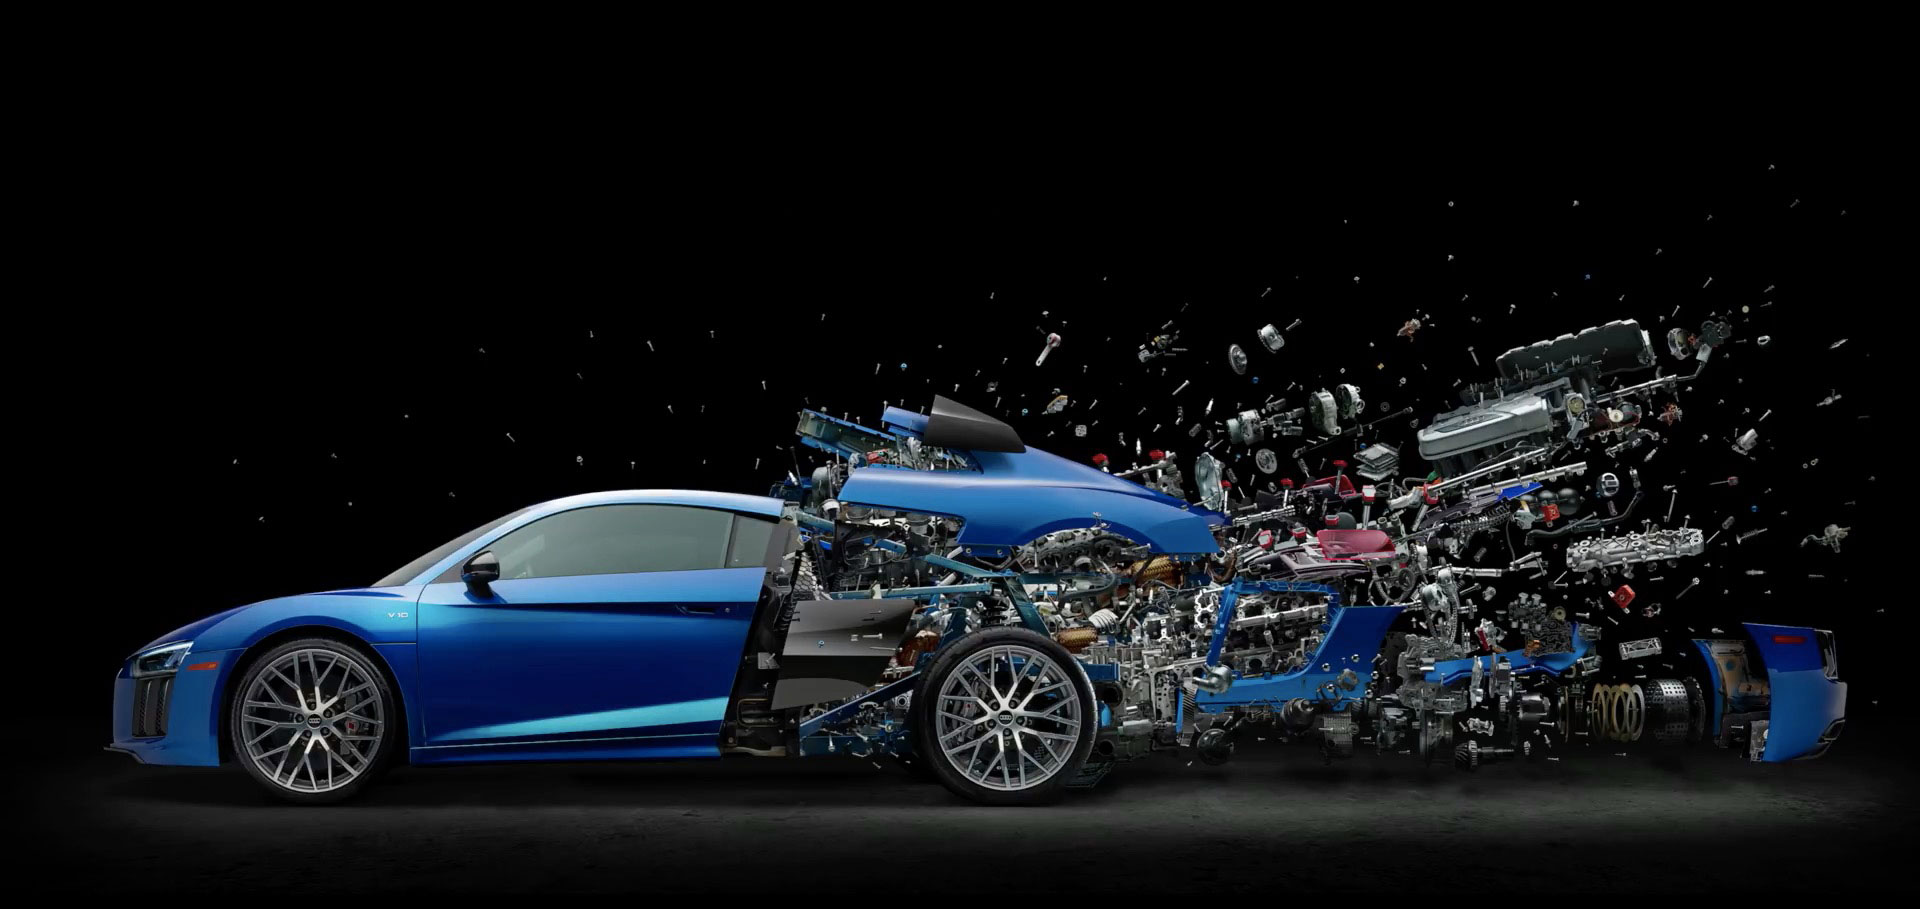 An Audi R8 That Died During An Airbnb Promotion Becomes An Explosive Work Of Art Muse By Clio